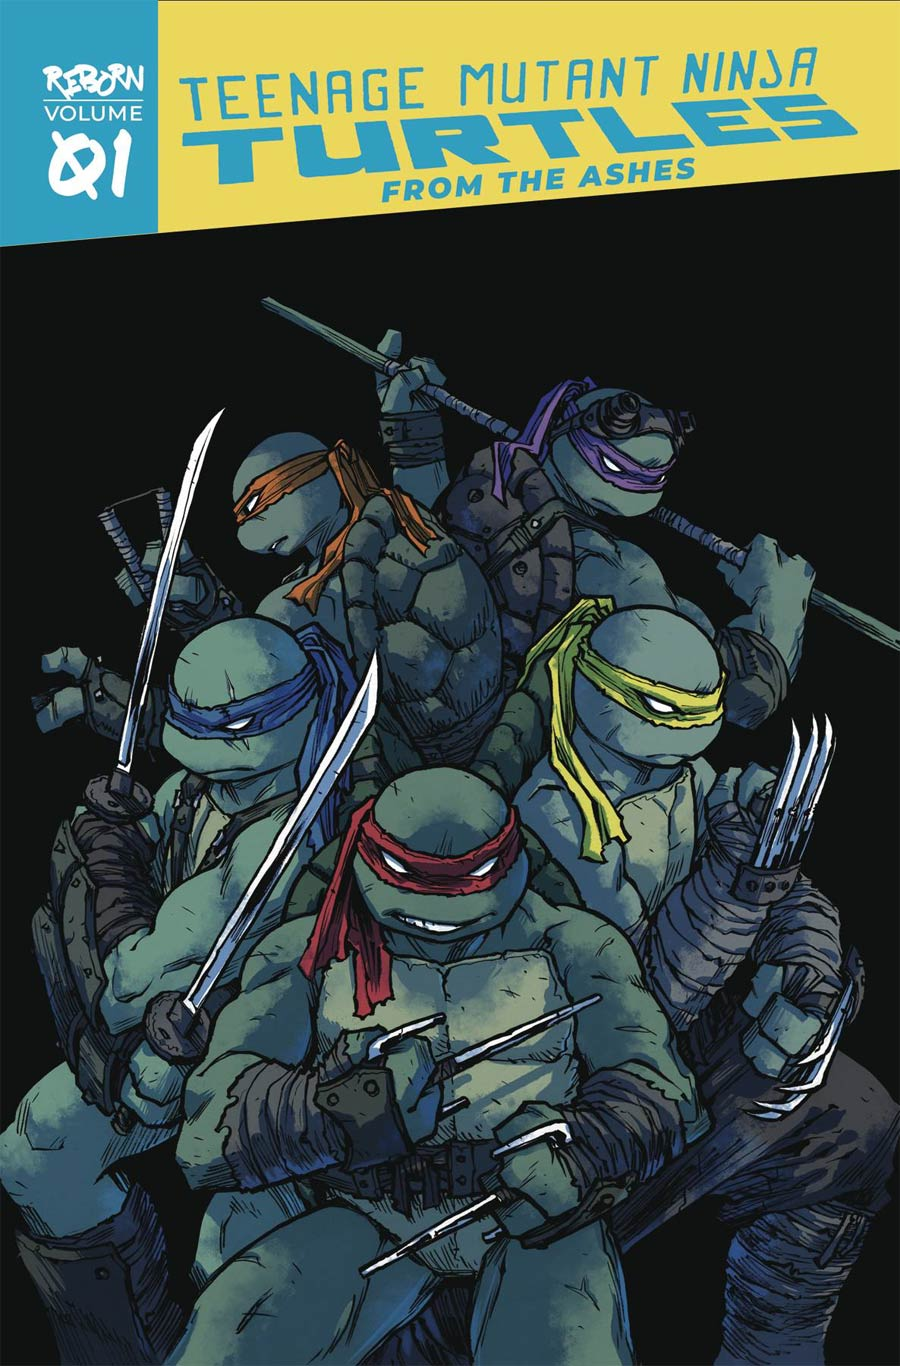 Teenage Mutant Ninja Turtles Reborn Vol 1 From The Ashes TP